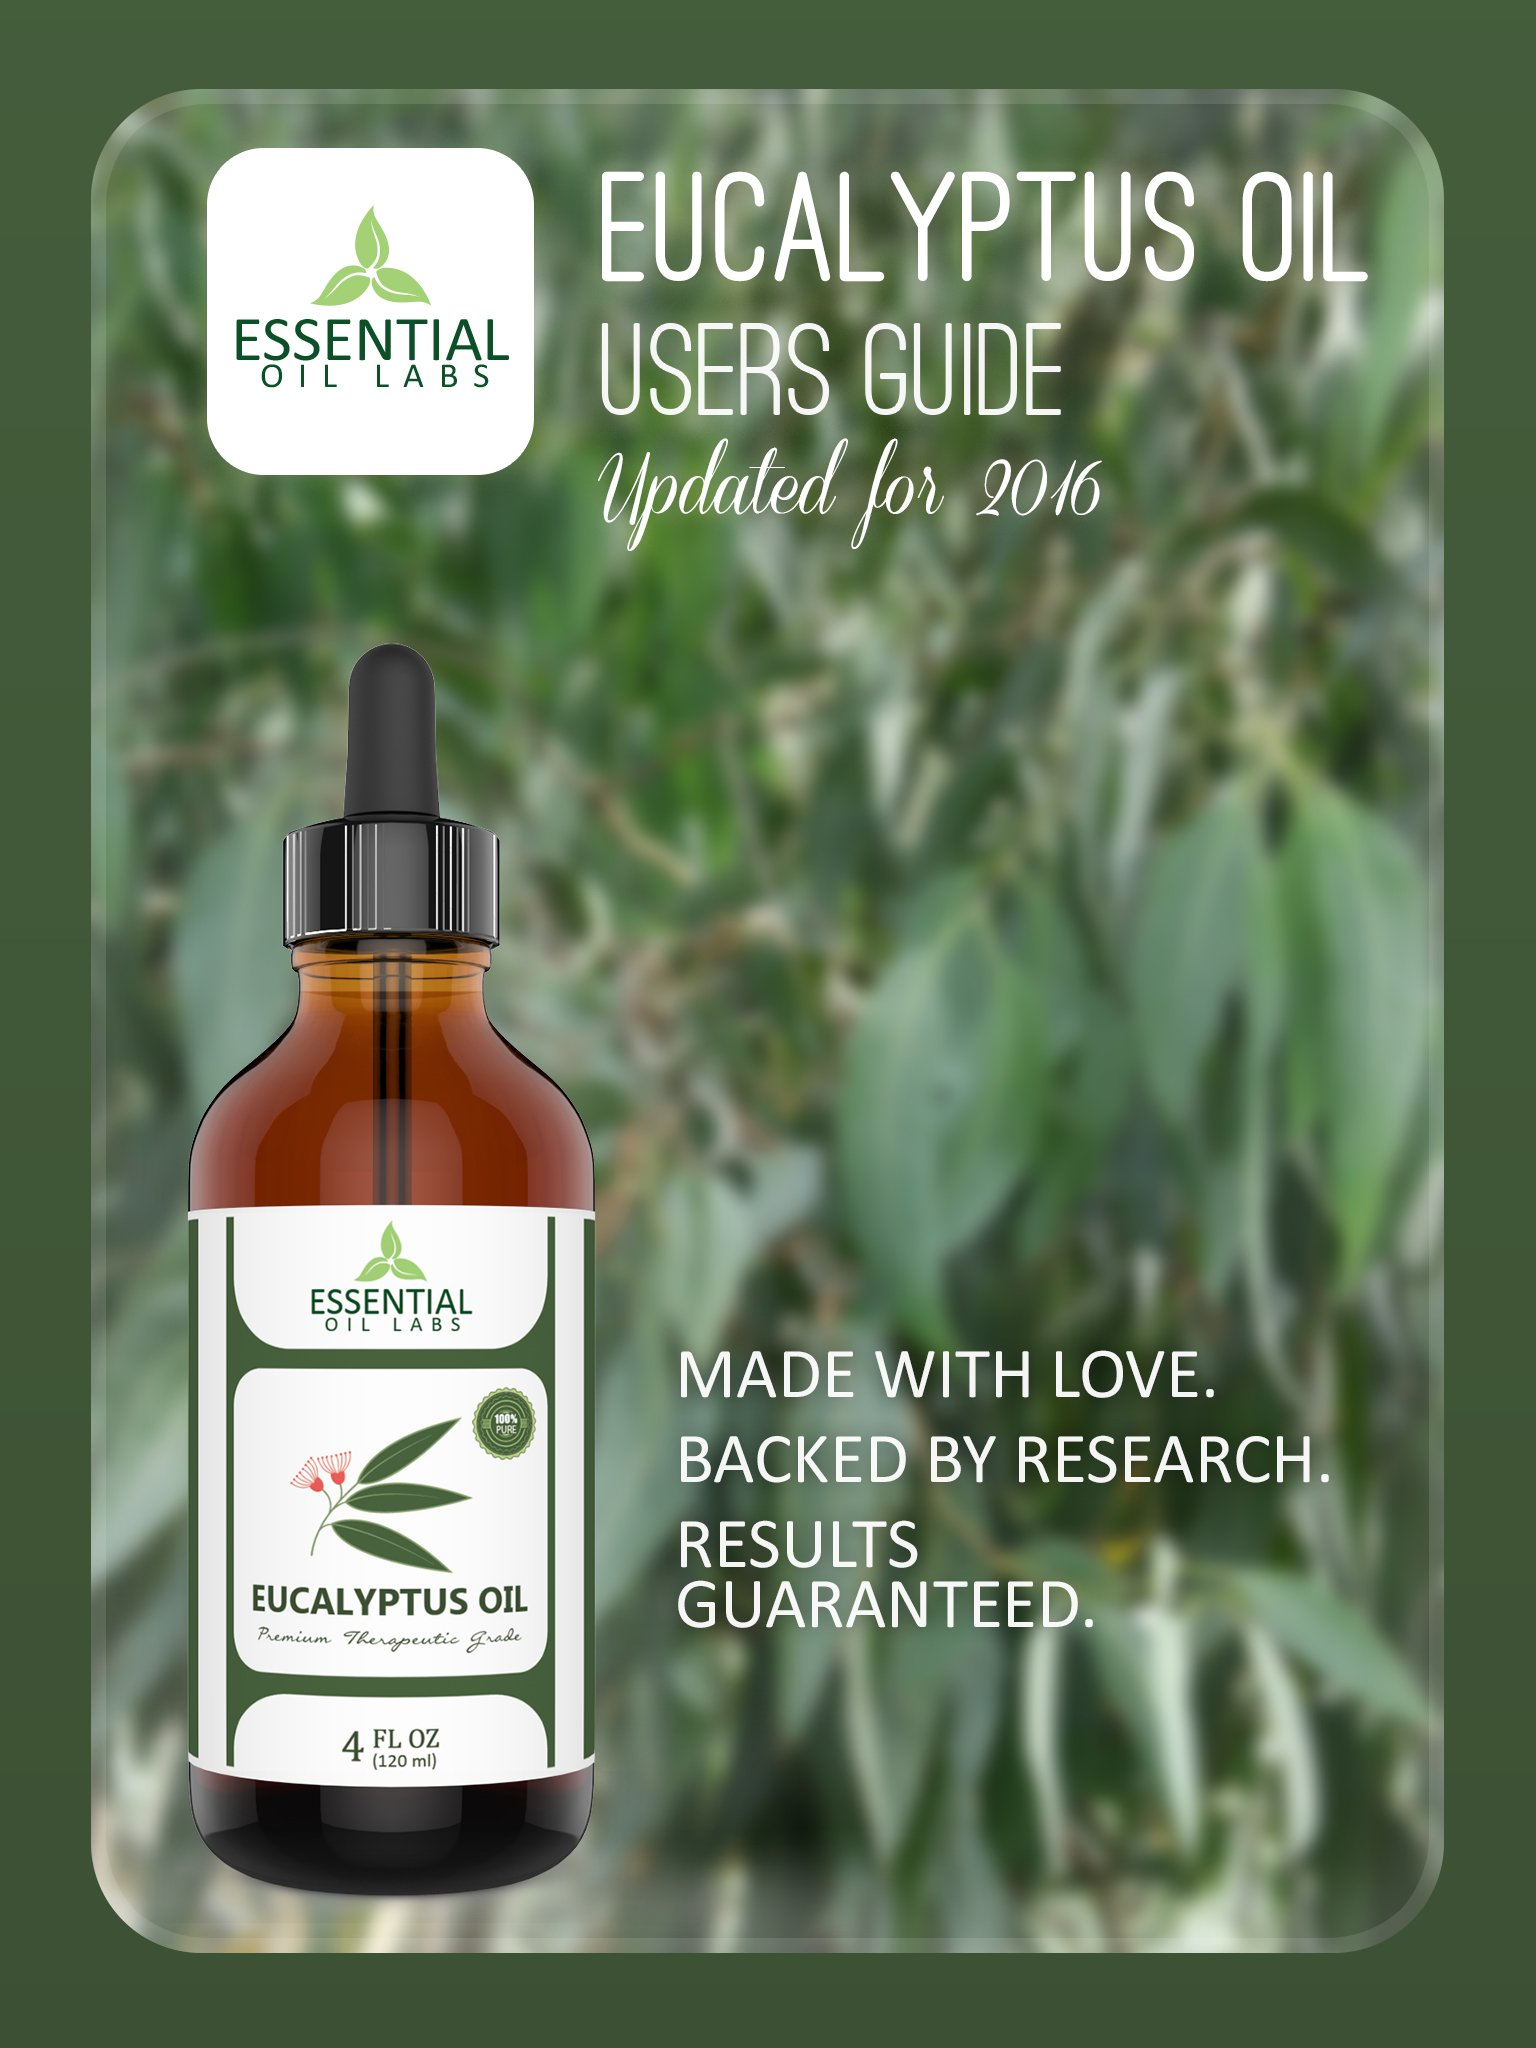 Eucalyptus Oil - Highest Quality Therapeutic Grade Backed by Research - Large 4 oz Bottle with Premium Dropper - 100% Pure and Natural by Essential Oil Labs by Essential Oil Labs (Image #9)